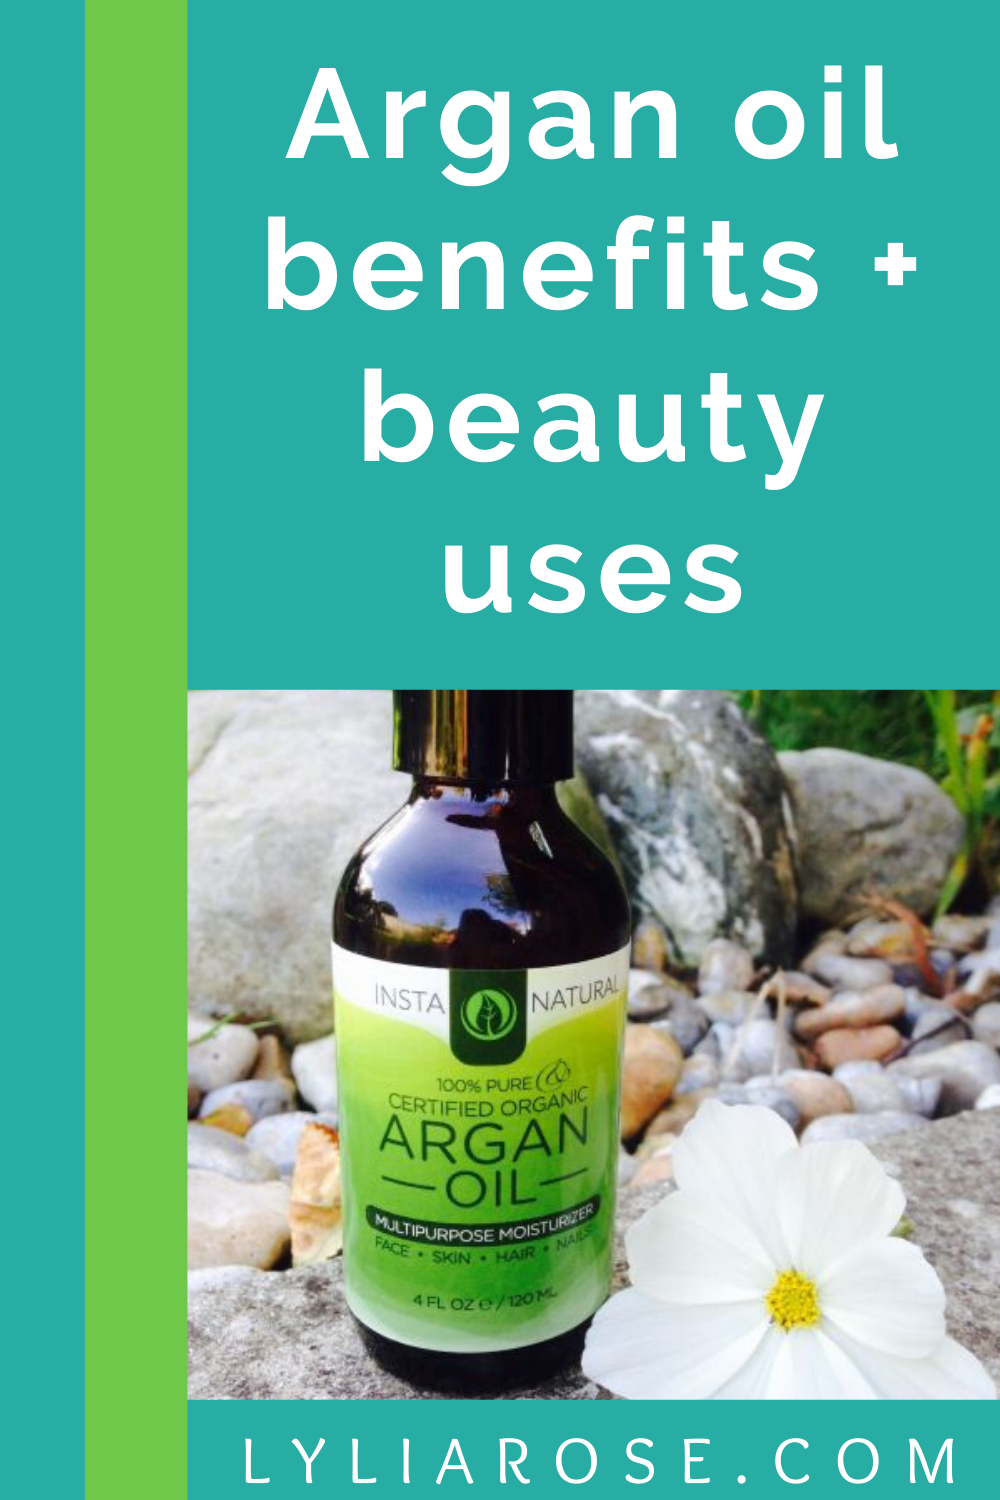 Argan oil benefits + beauty uses